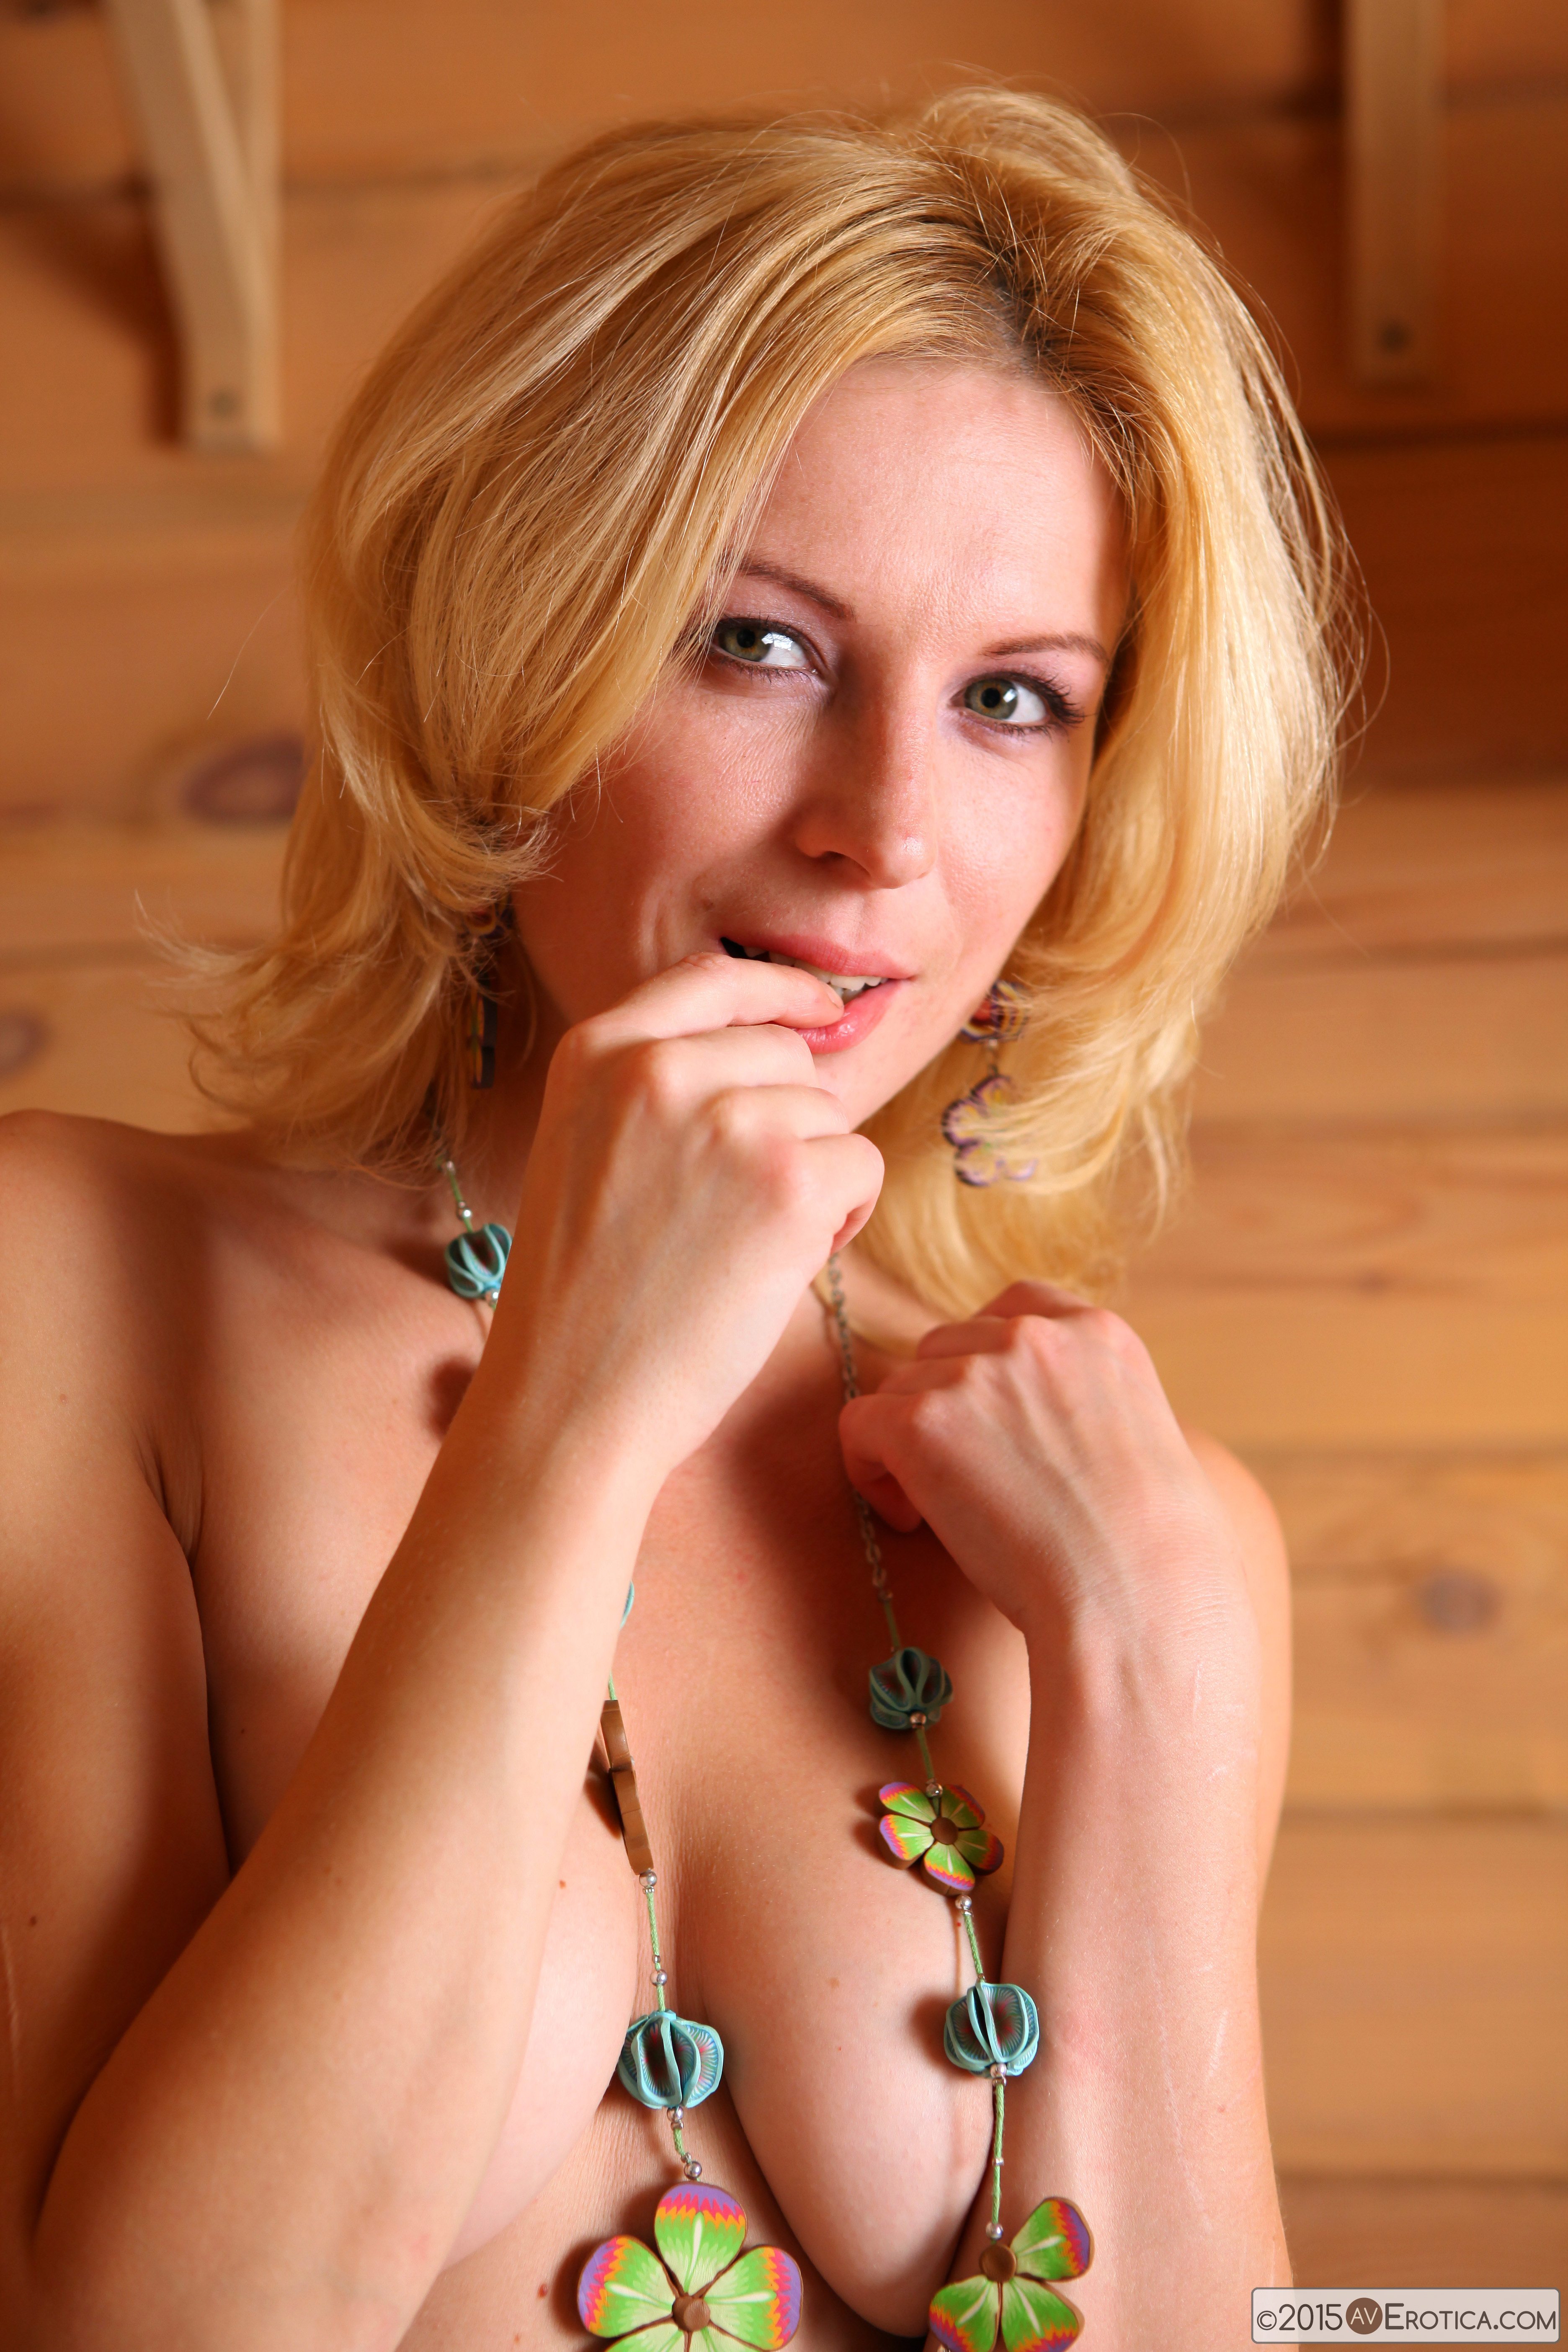 what is a free dating site site